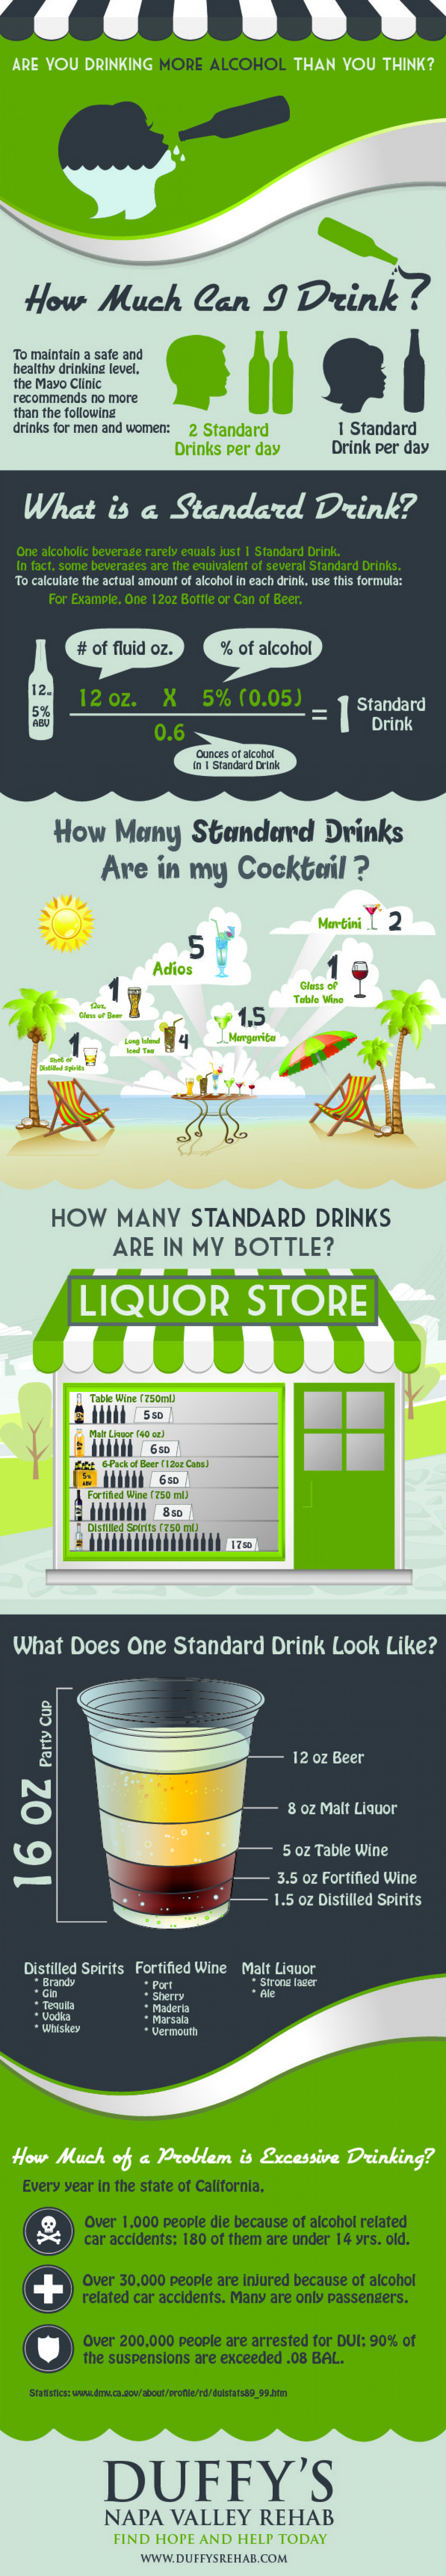 How Much Alcohol Am I Drinking? Infographic